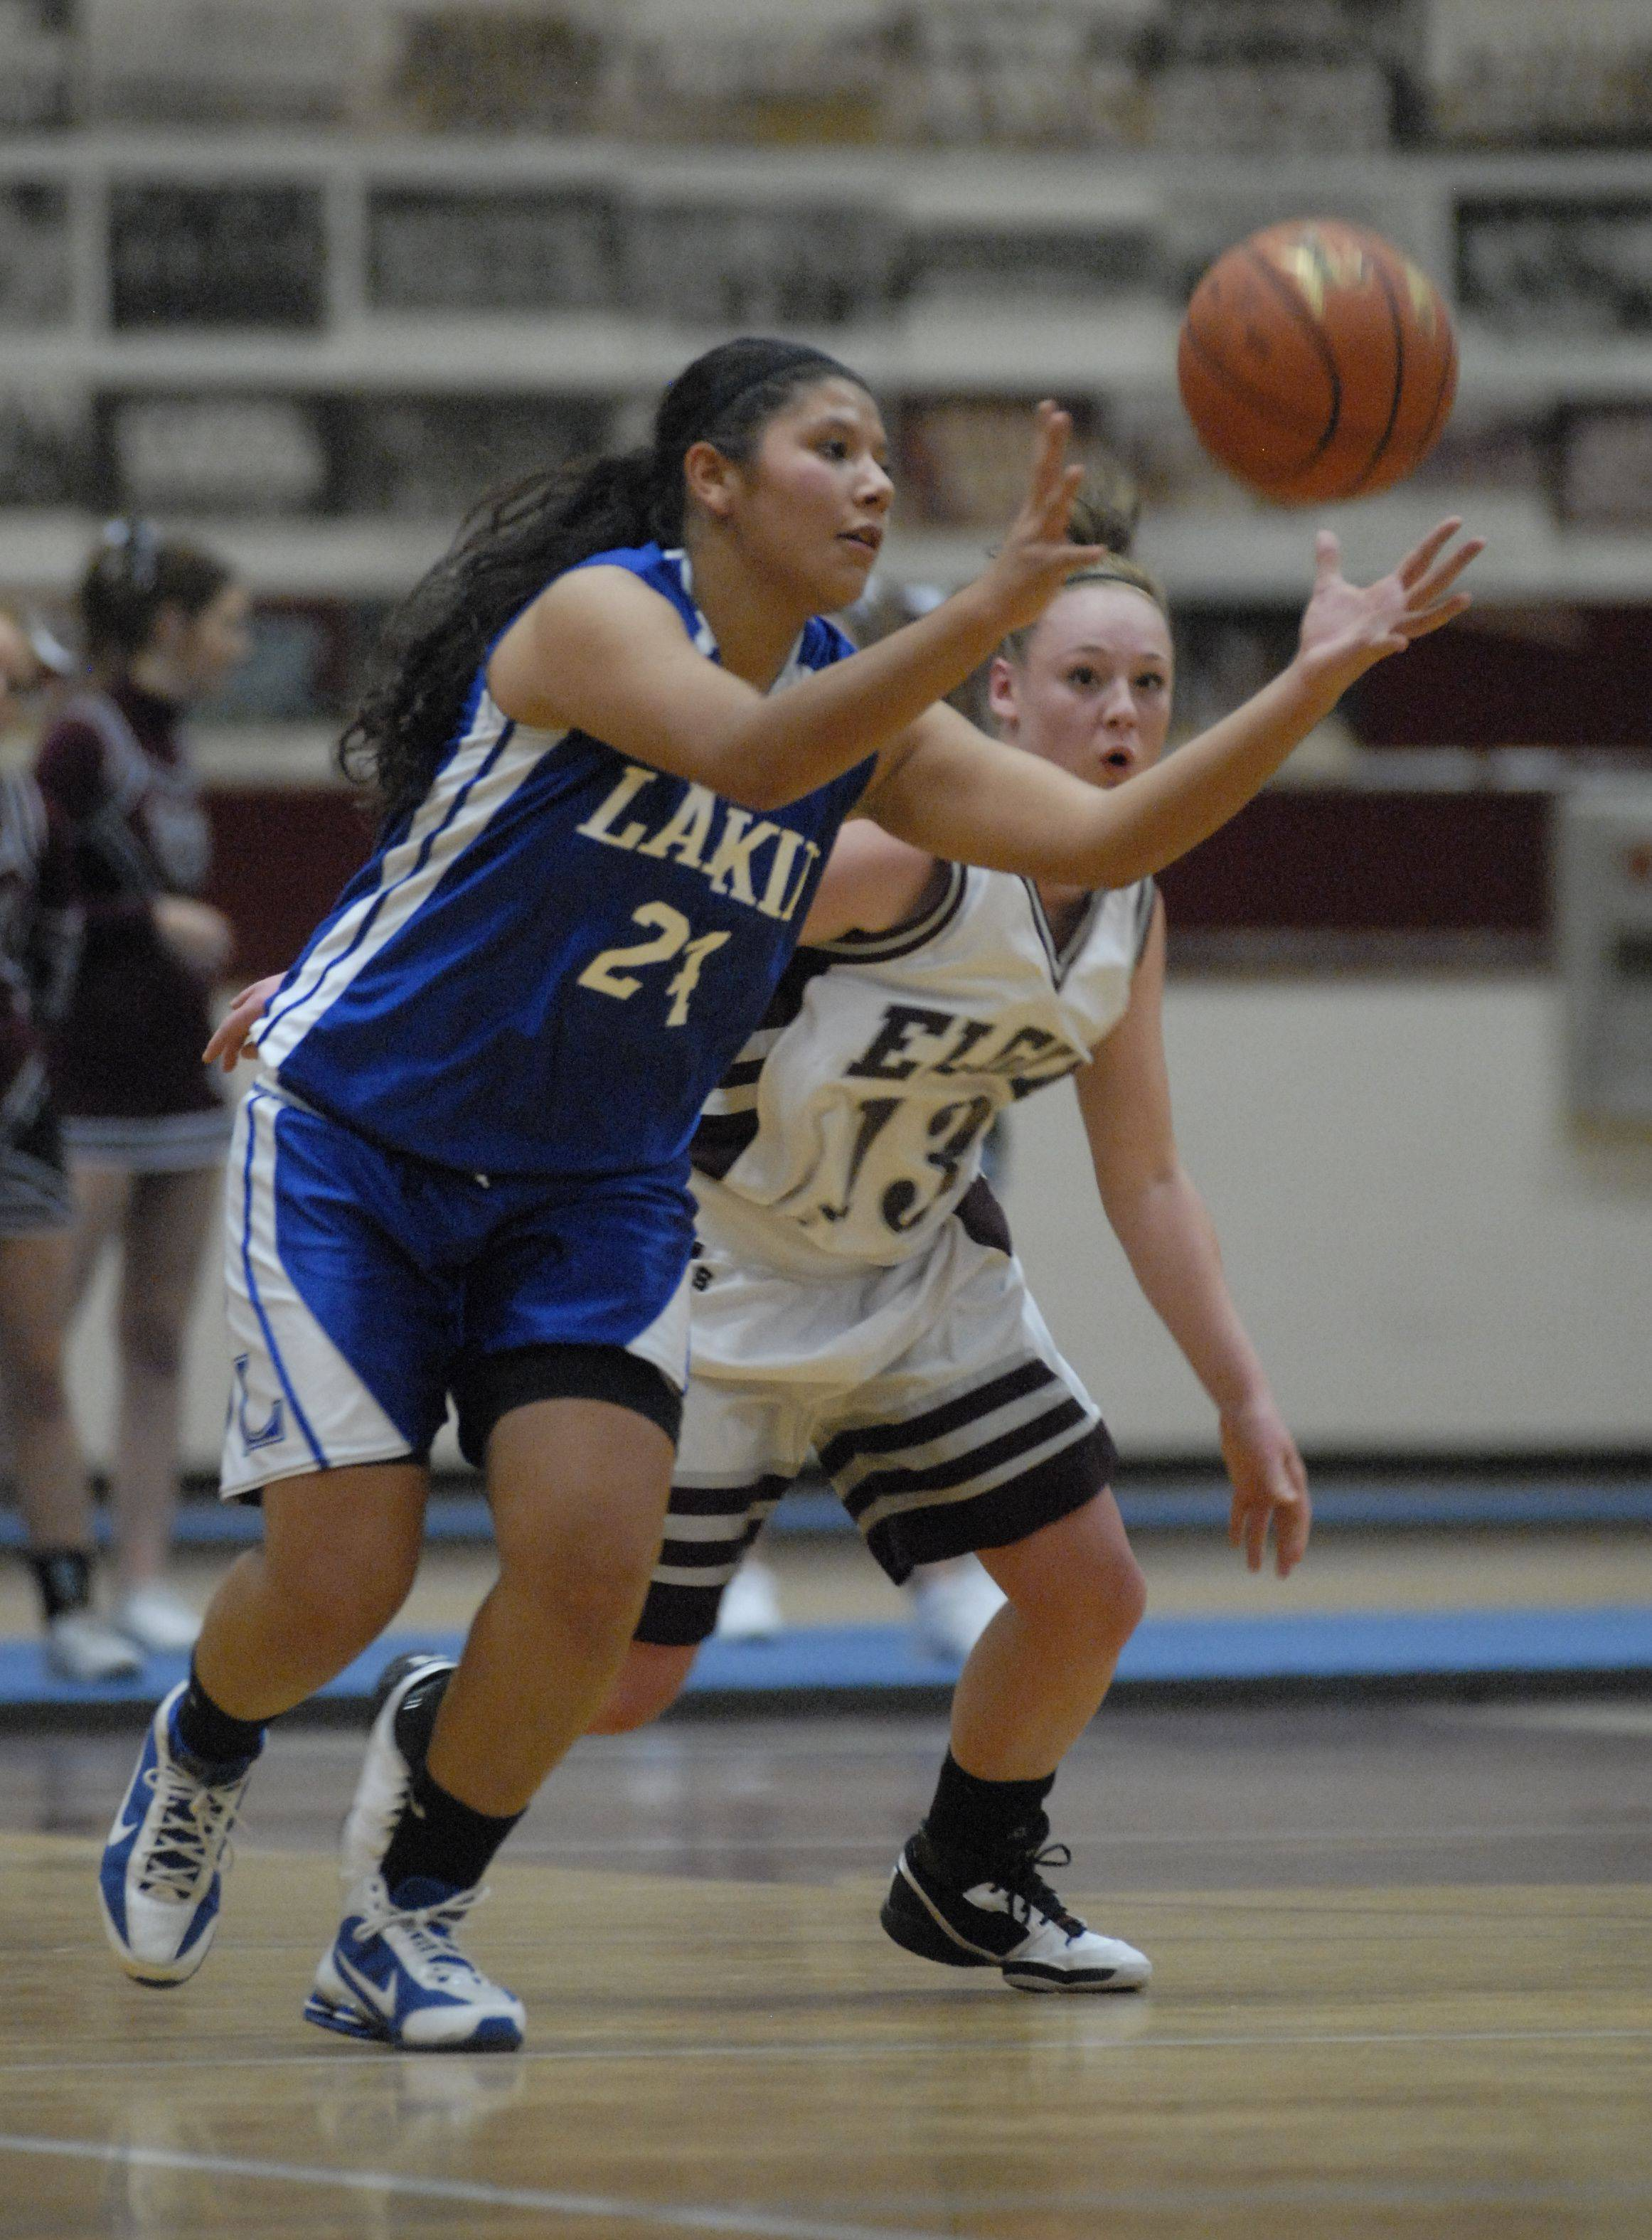 Images from the Elgin vs. Larkin girls basketball game Thursday, December 9, 2010.